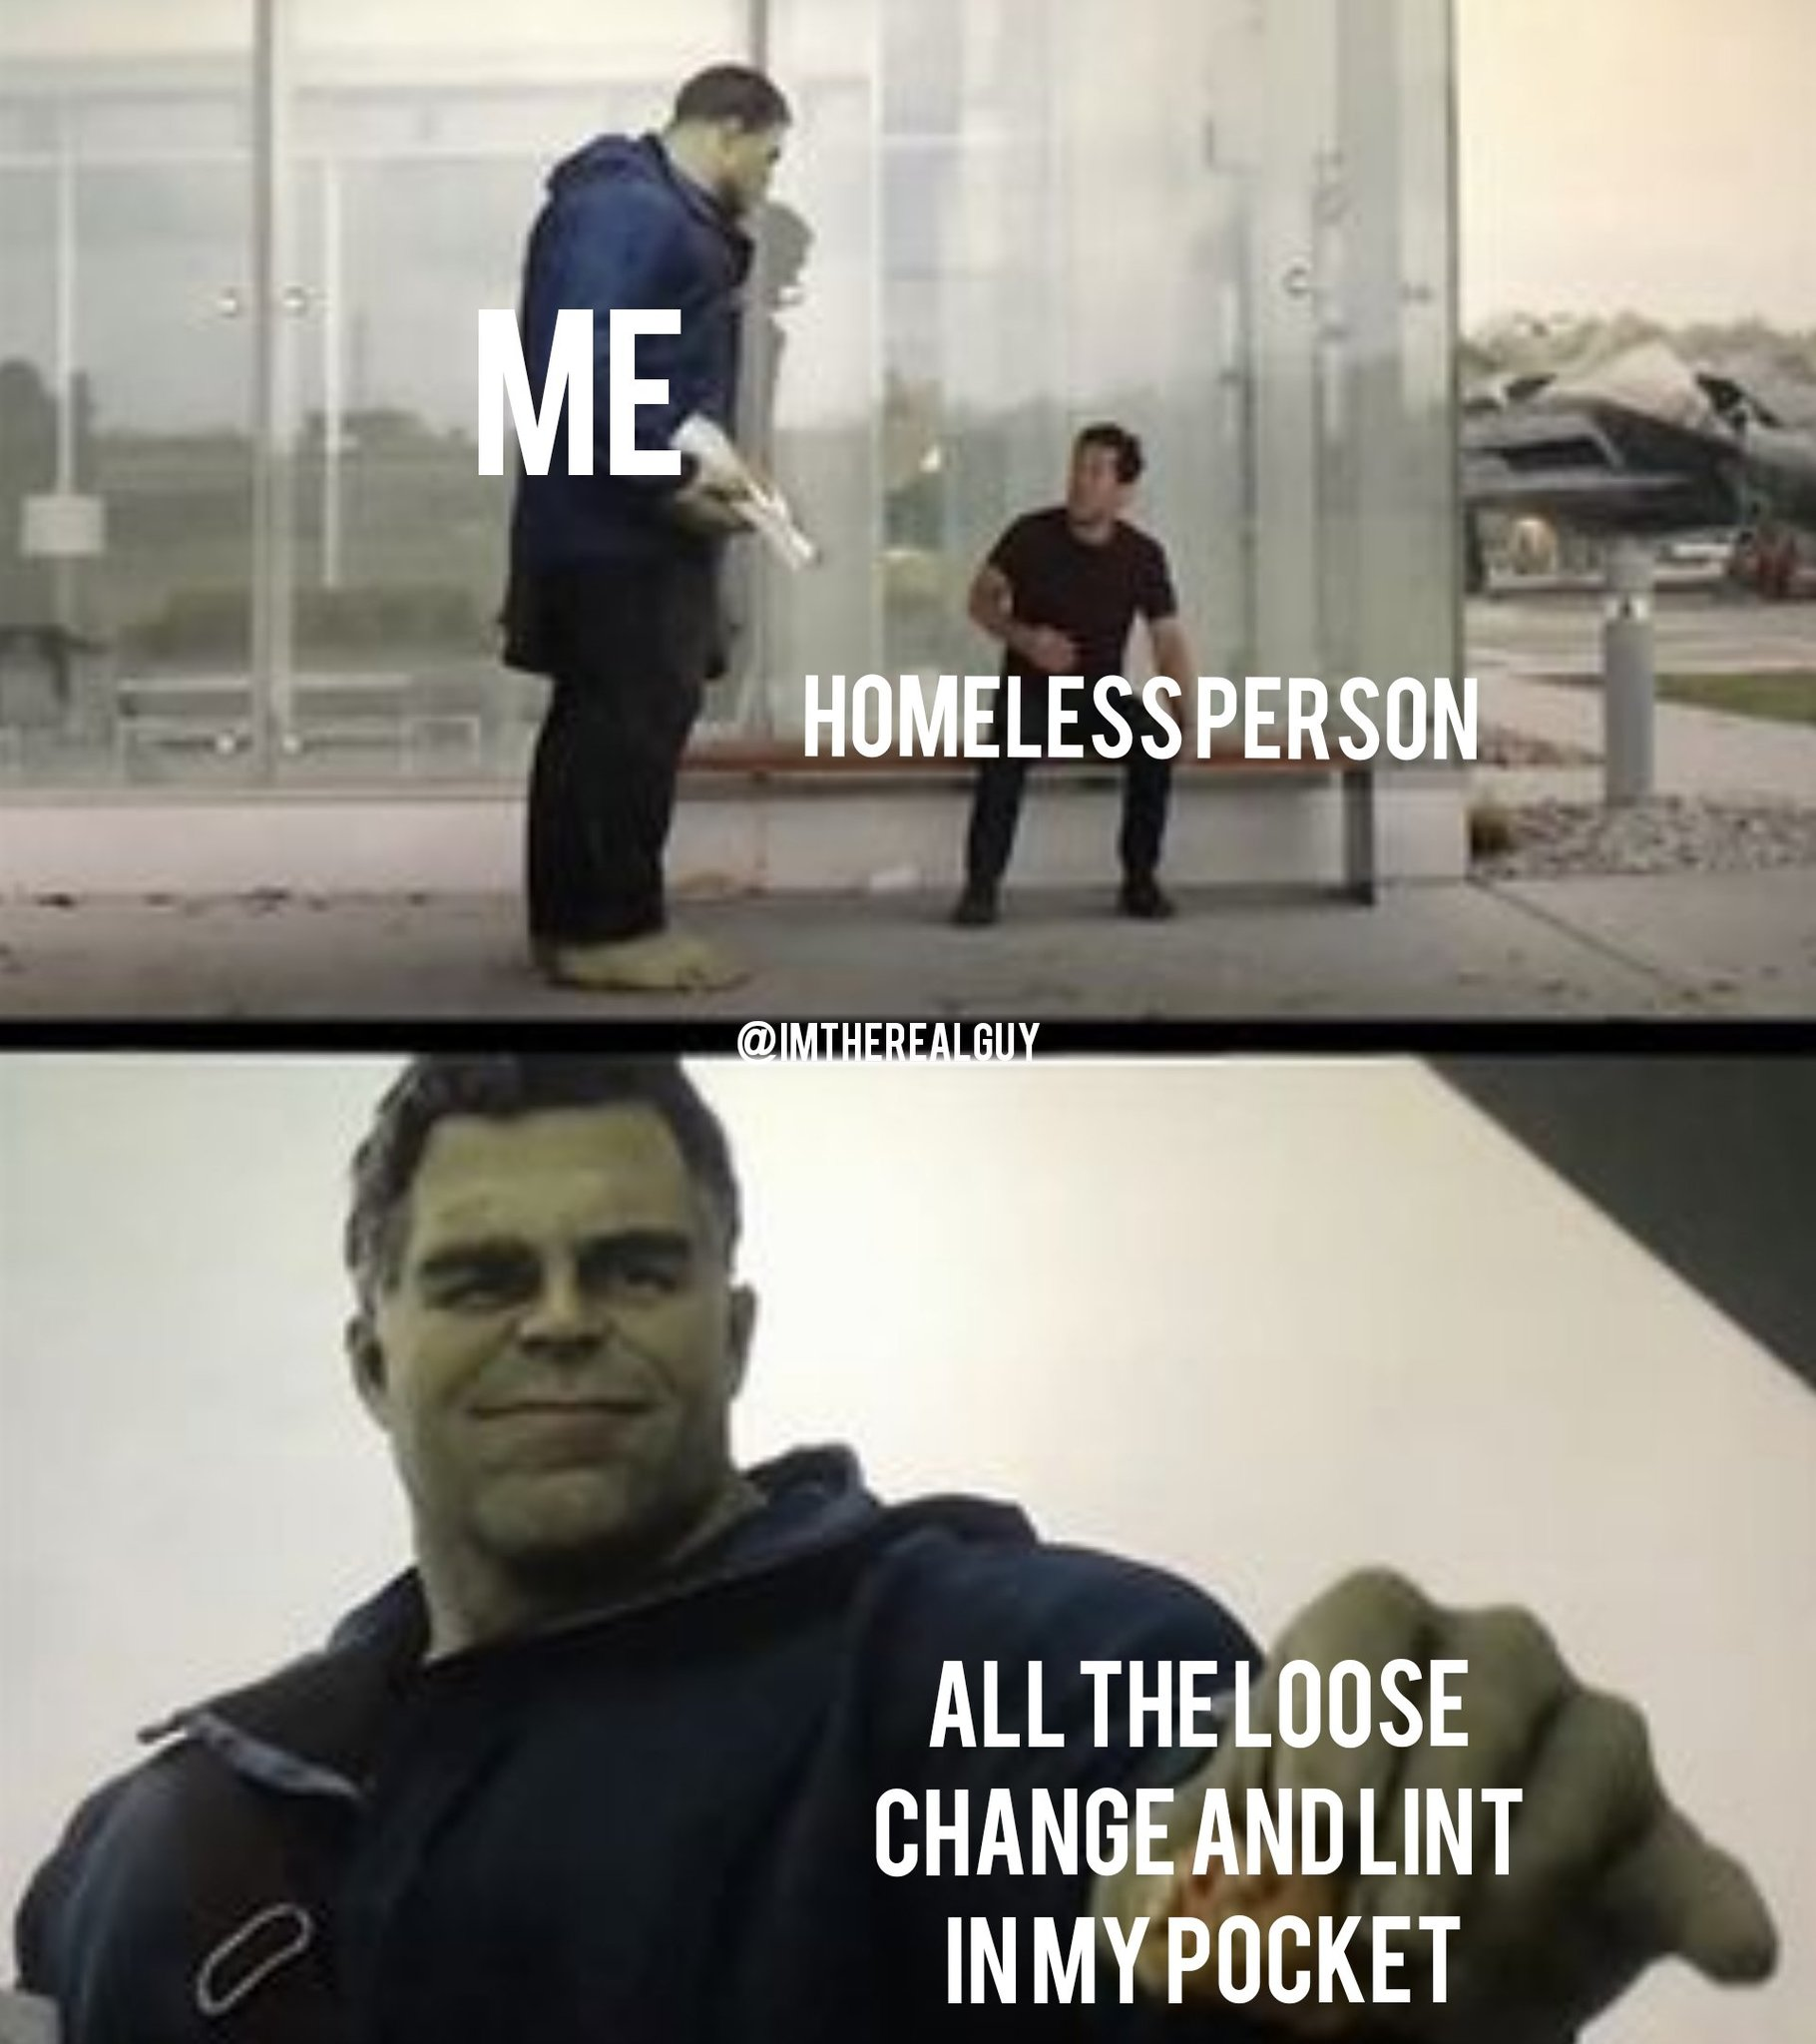 Giving to those in need - meme